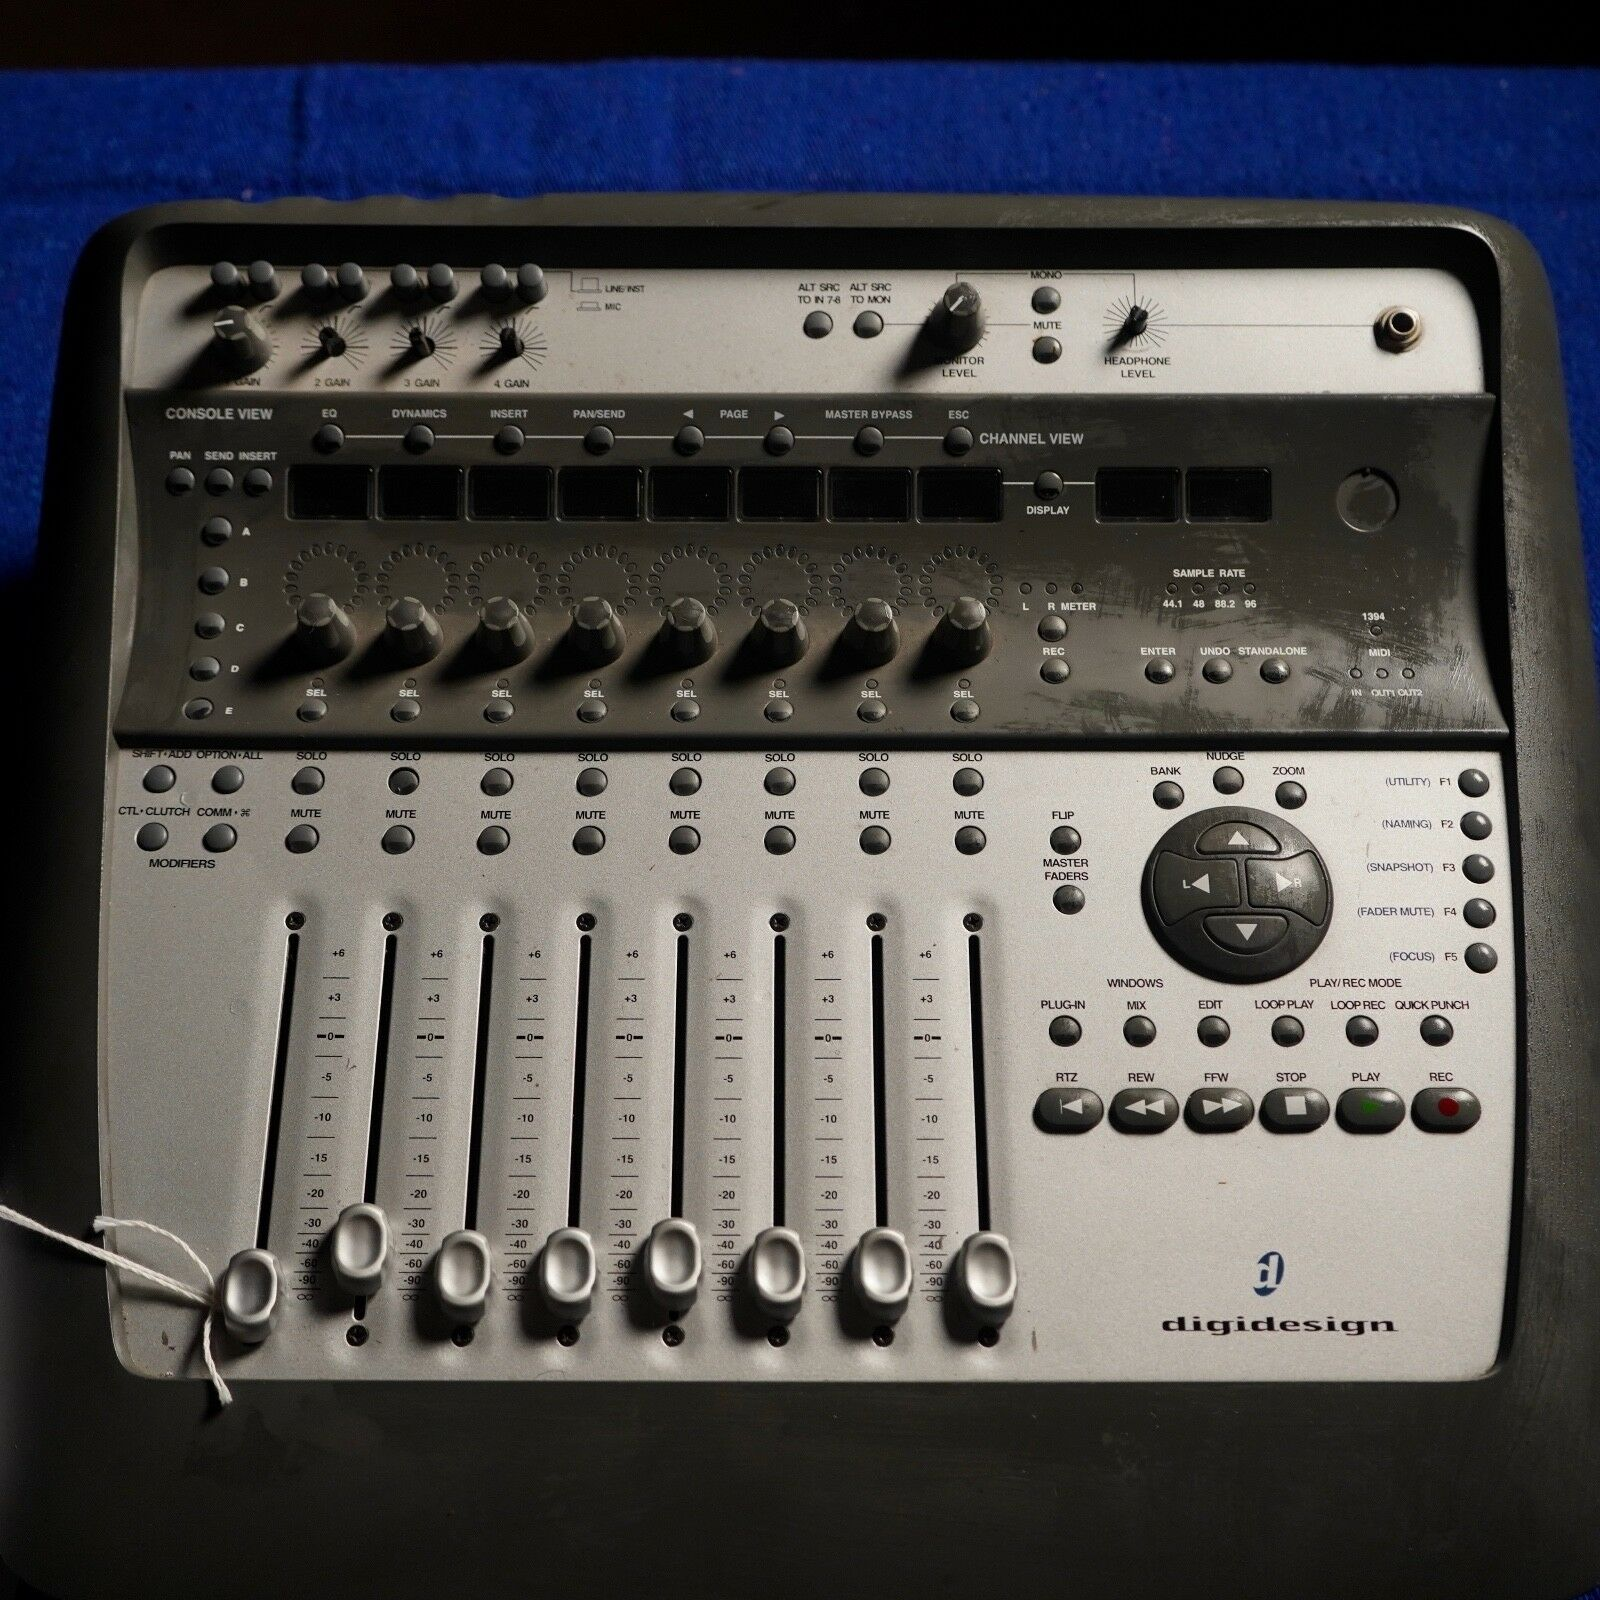 Digidesign Digi 002 mixer interface